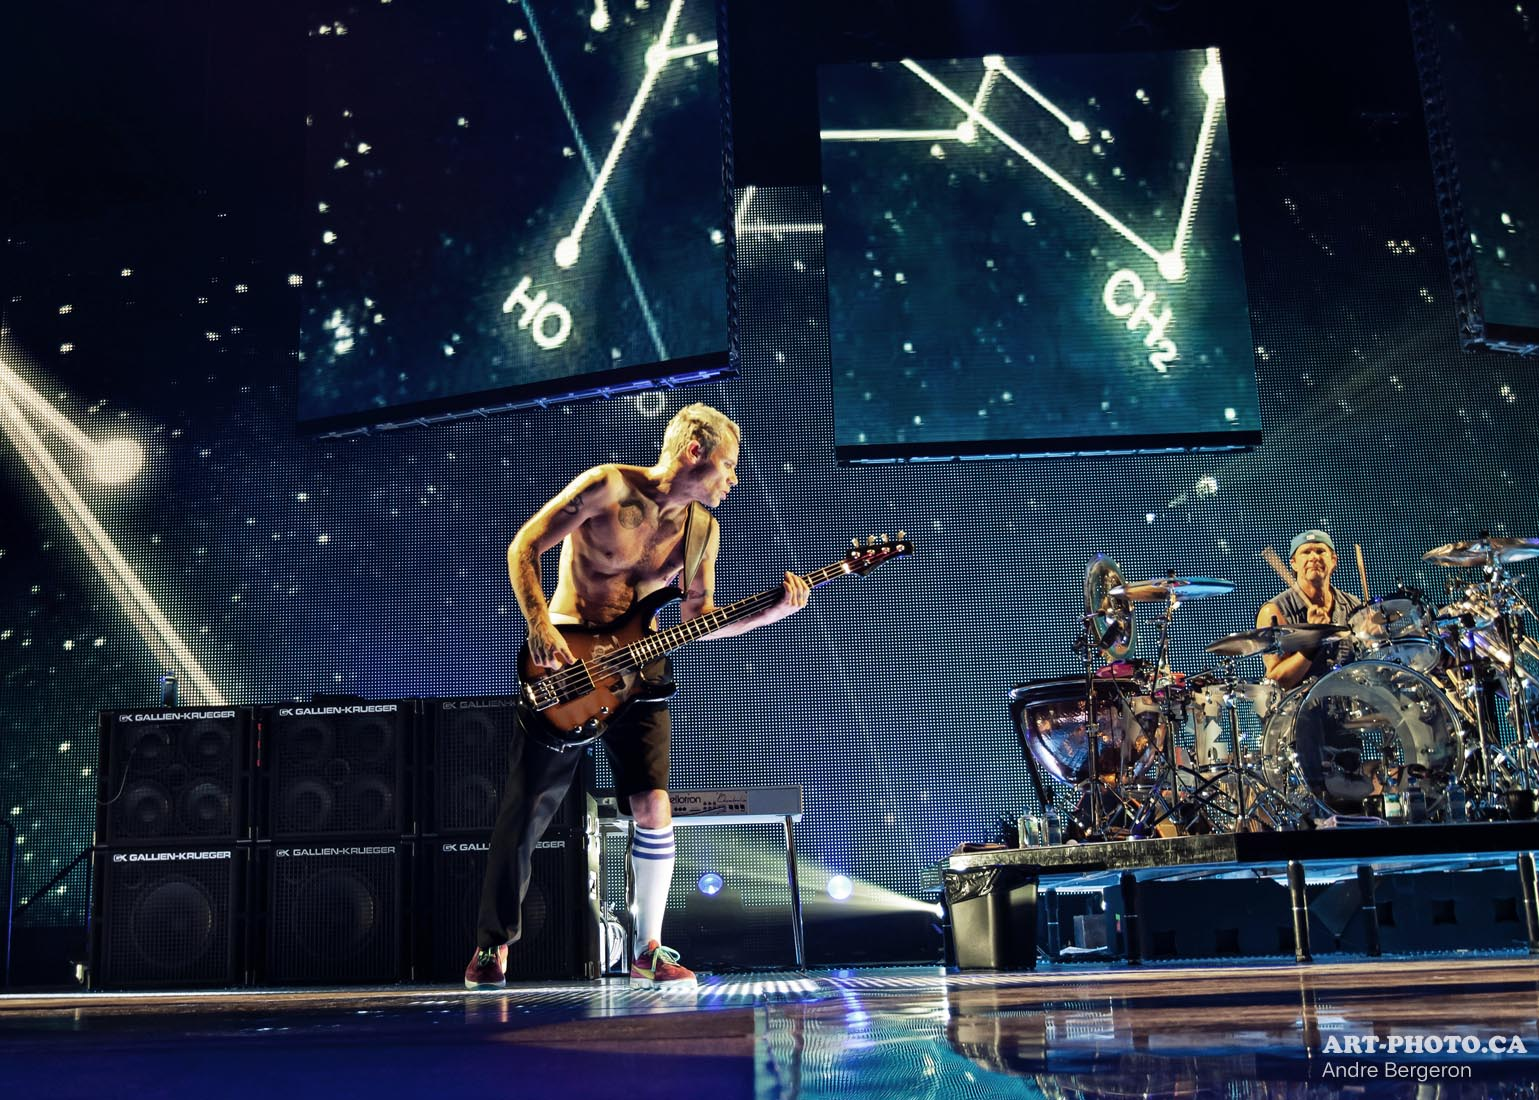 Red hot chili peppers tour dates